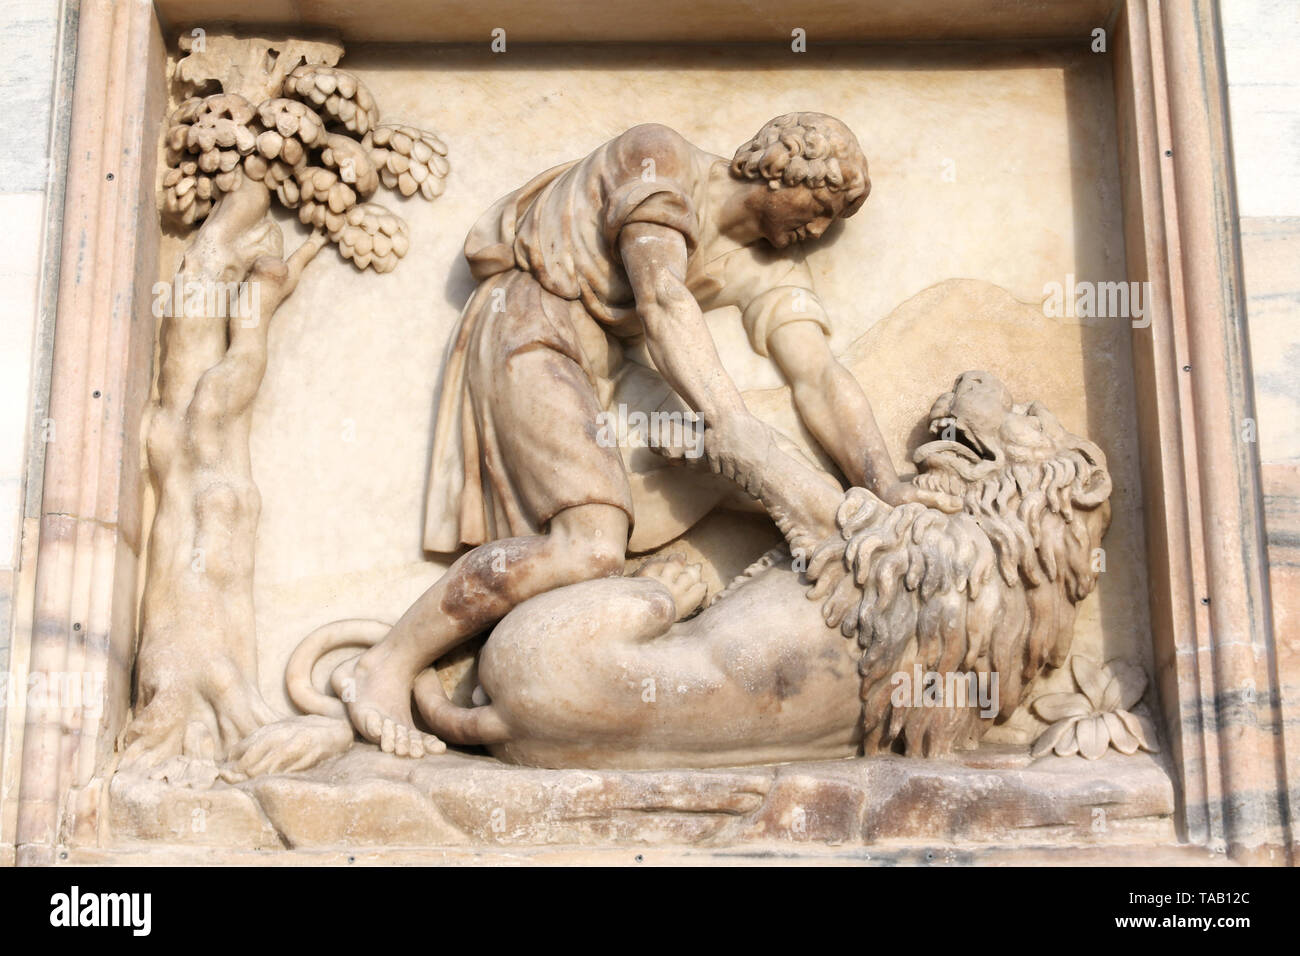 Milan, Italy. Famous landmark - the cathedral made of Candoglia marble. Samson slaying the lion - biblical story. - Stock Image